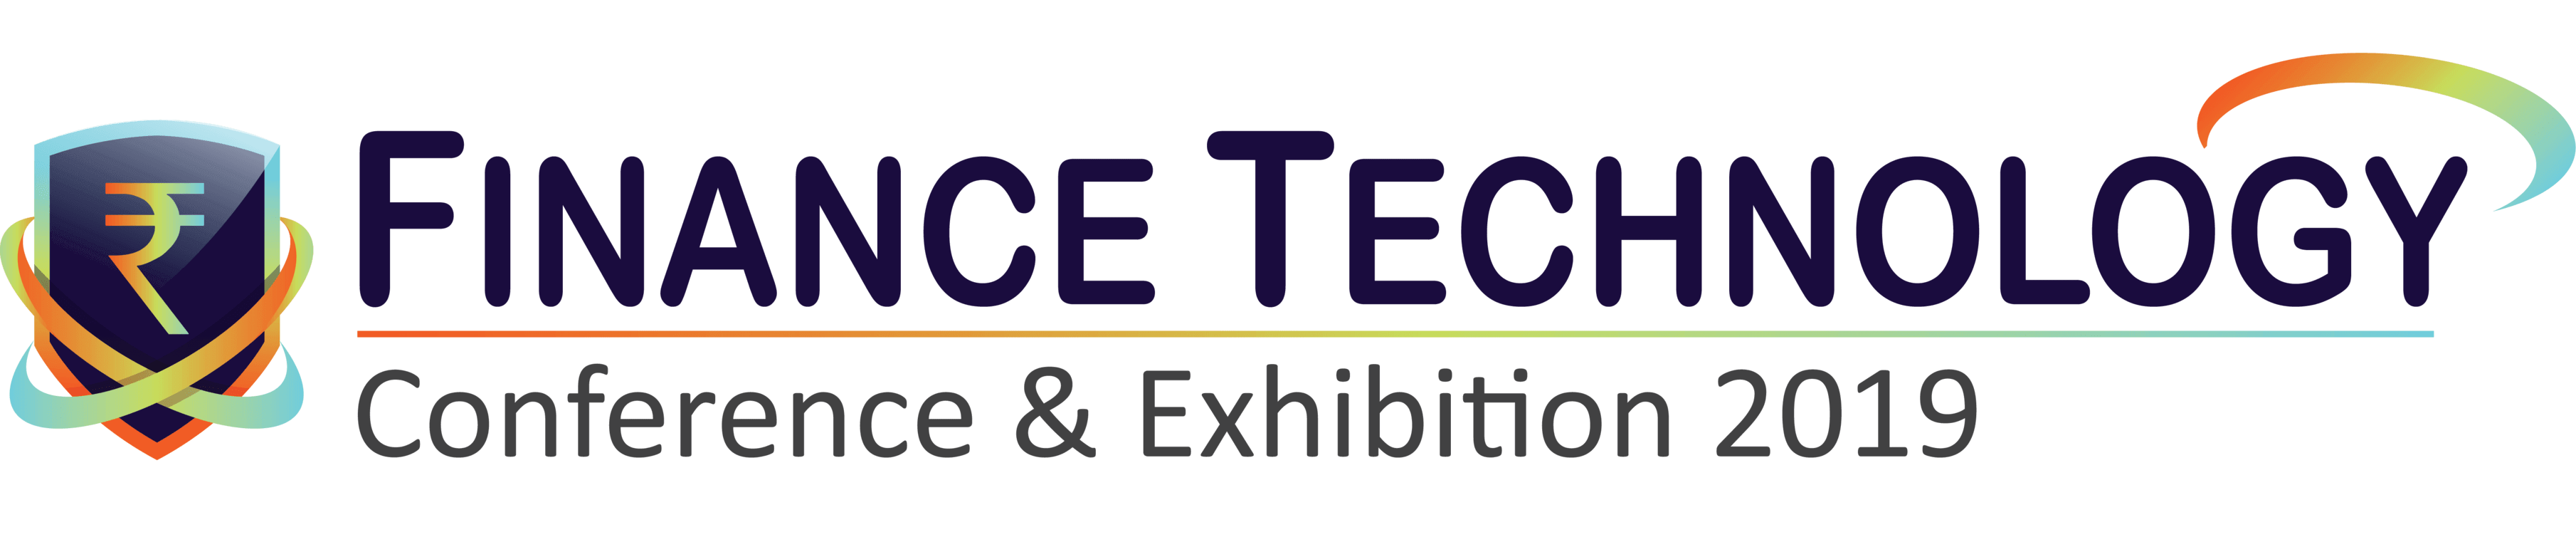 Finance Technology Conference 2019